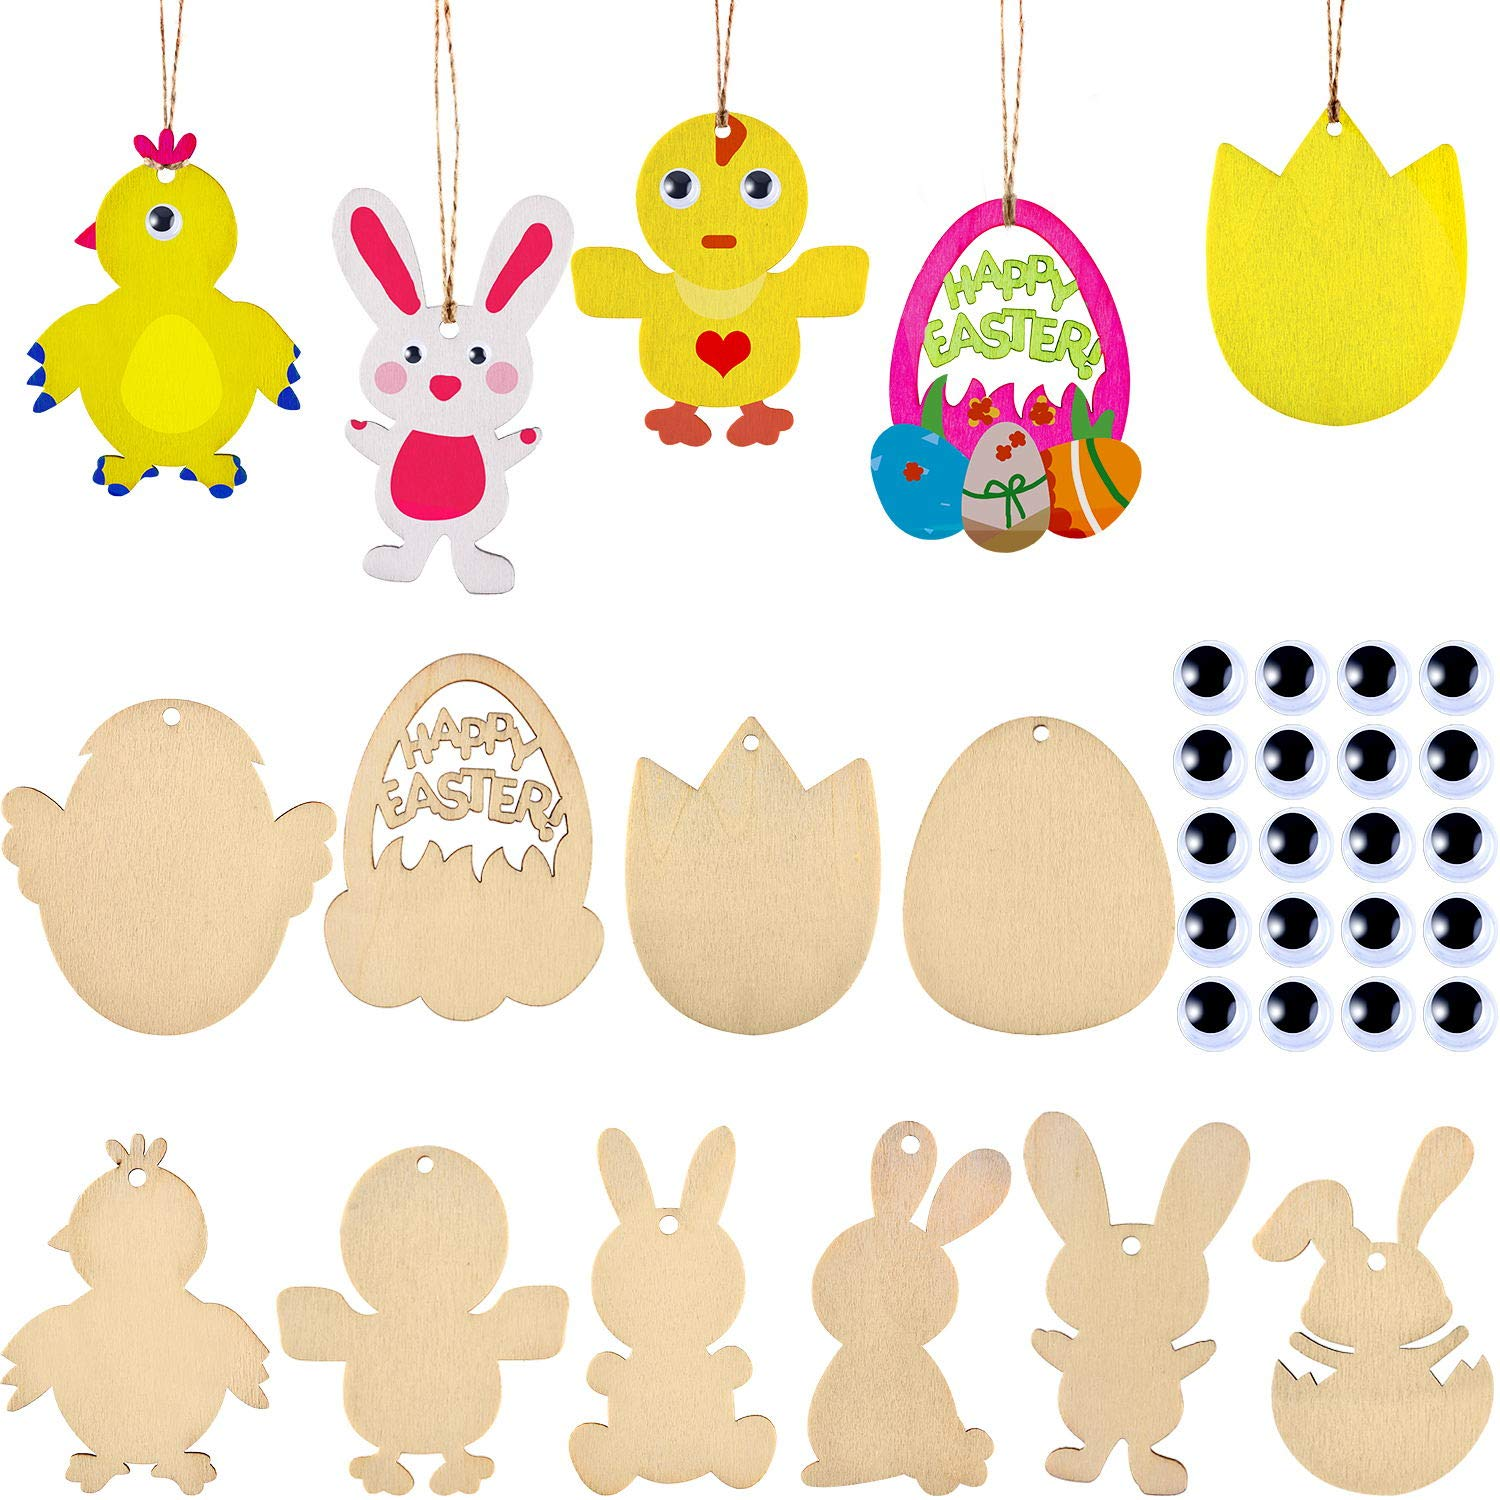 60 Pieces Easter Wooden Embellishments Unfinished Wooden Easter Egg Bunny Chick Tulip Shape Hanging Ornaments with Twines and Googly Wiggle Eyes for Crafts /& Easter Party Decorations